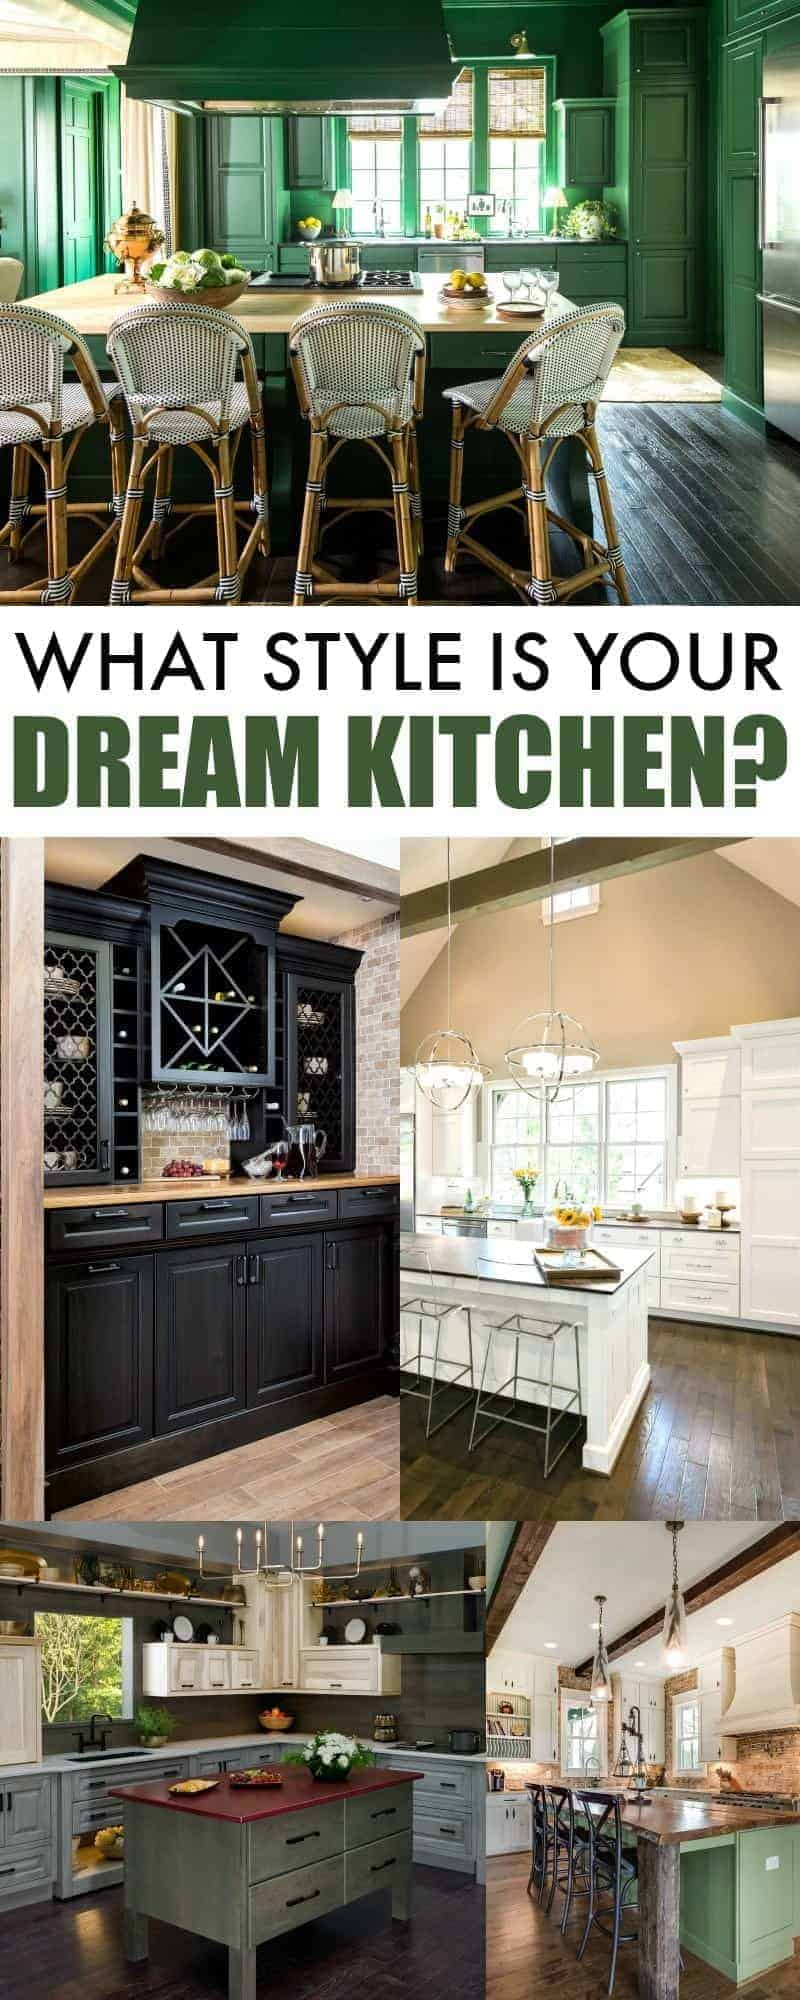 What Style is Your Dream Kitchen? Enter the Wellborn Cabinet Dream Kitchen Giveaway for a chance to win $12,000 towards your dream kitchen!